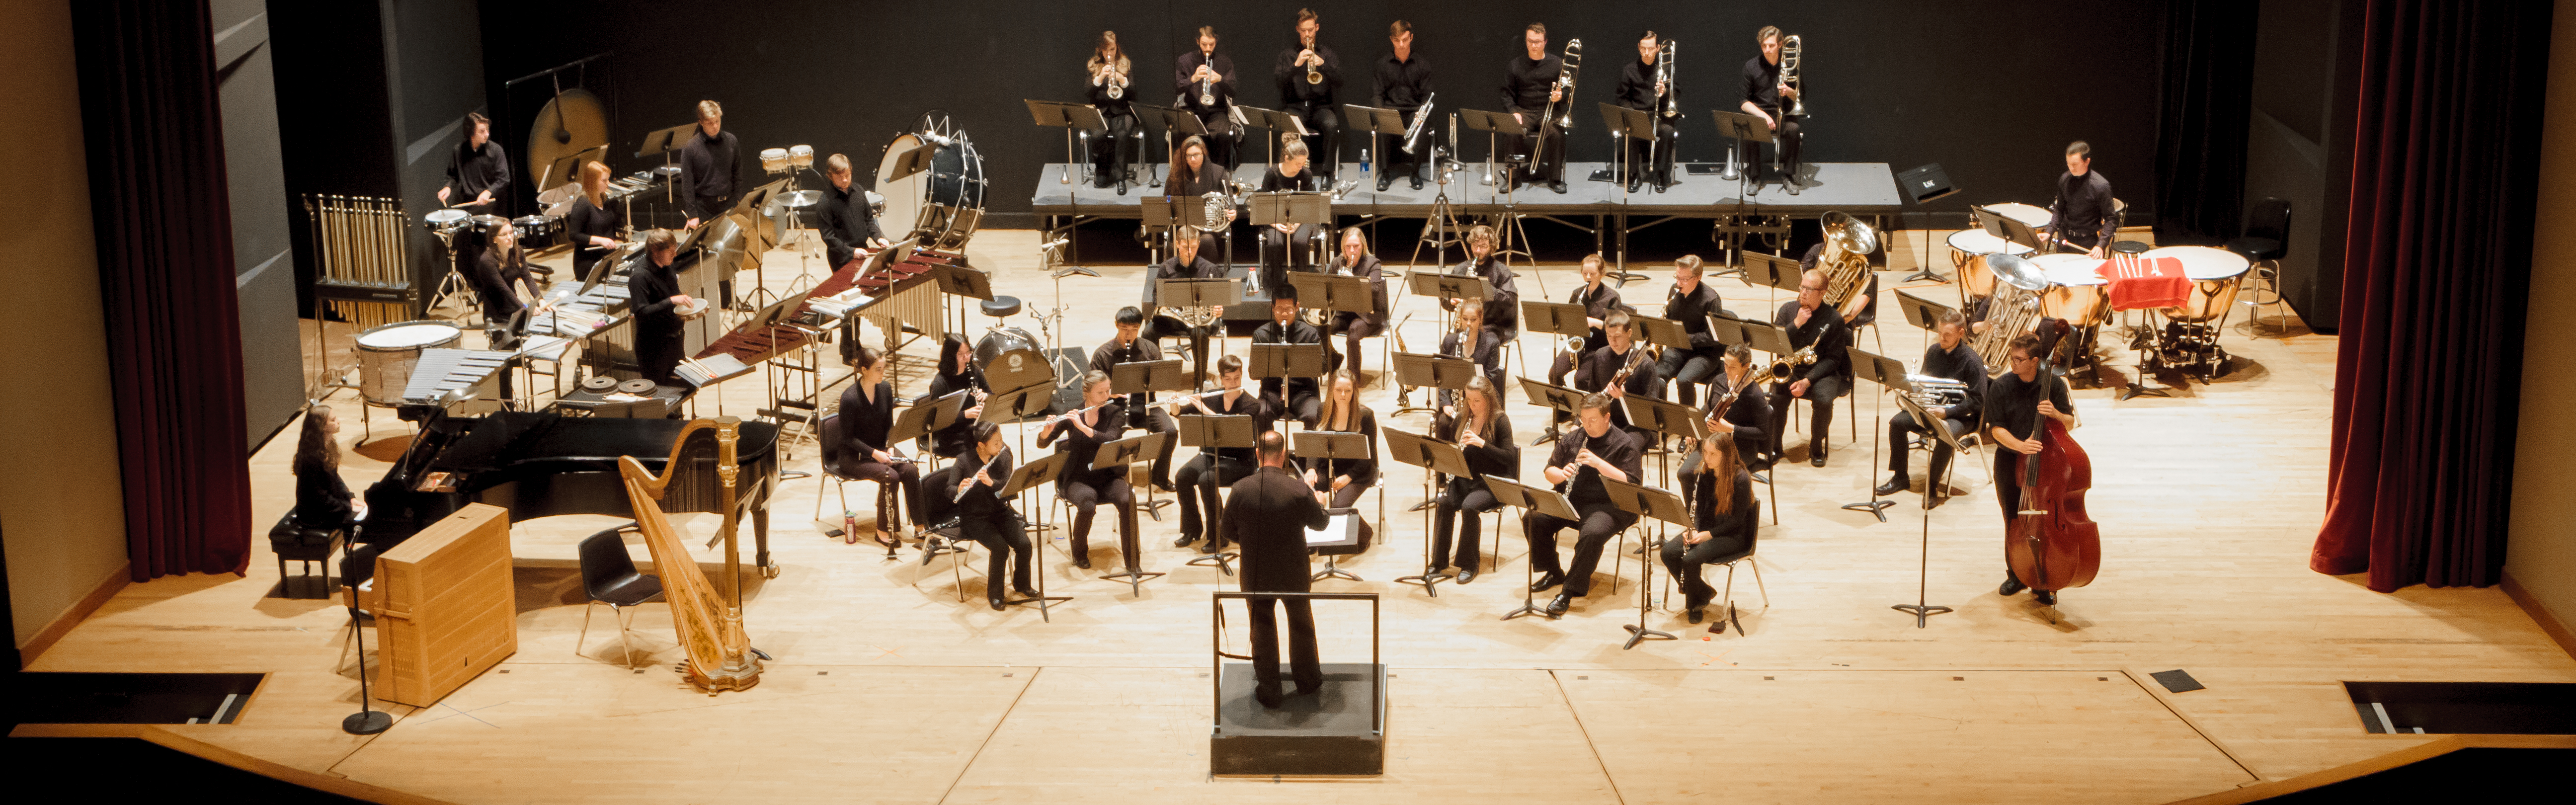 The OSU Wind Ensemble in concert at The LaSells Stewart Center